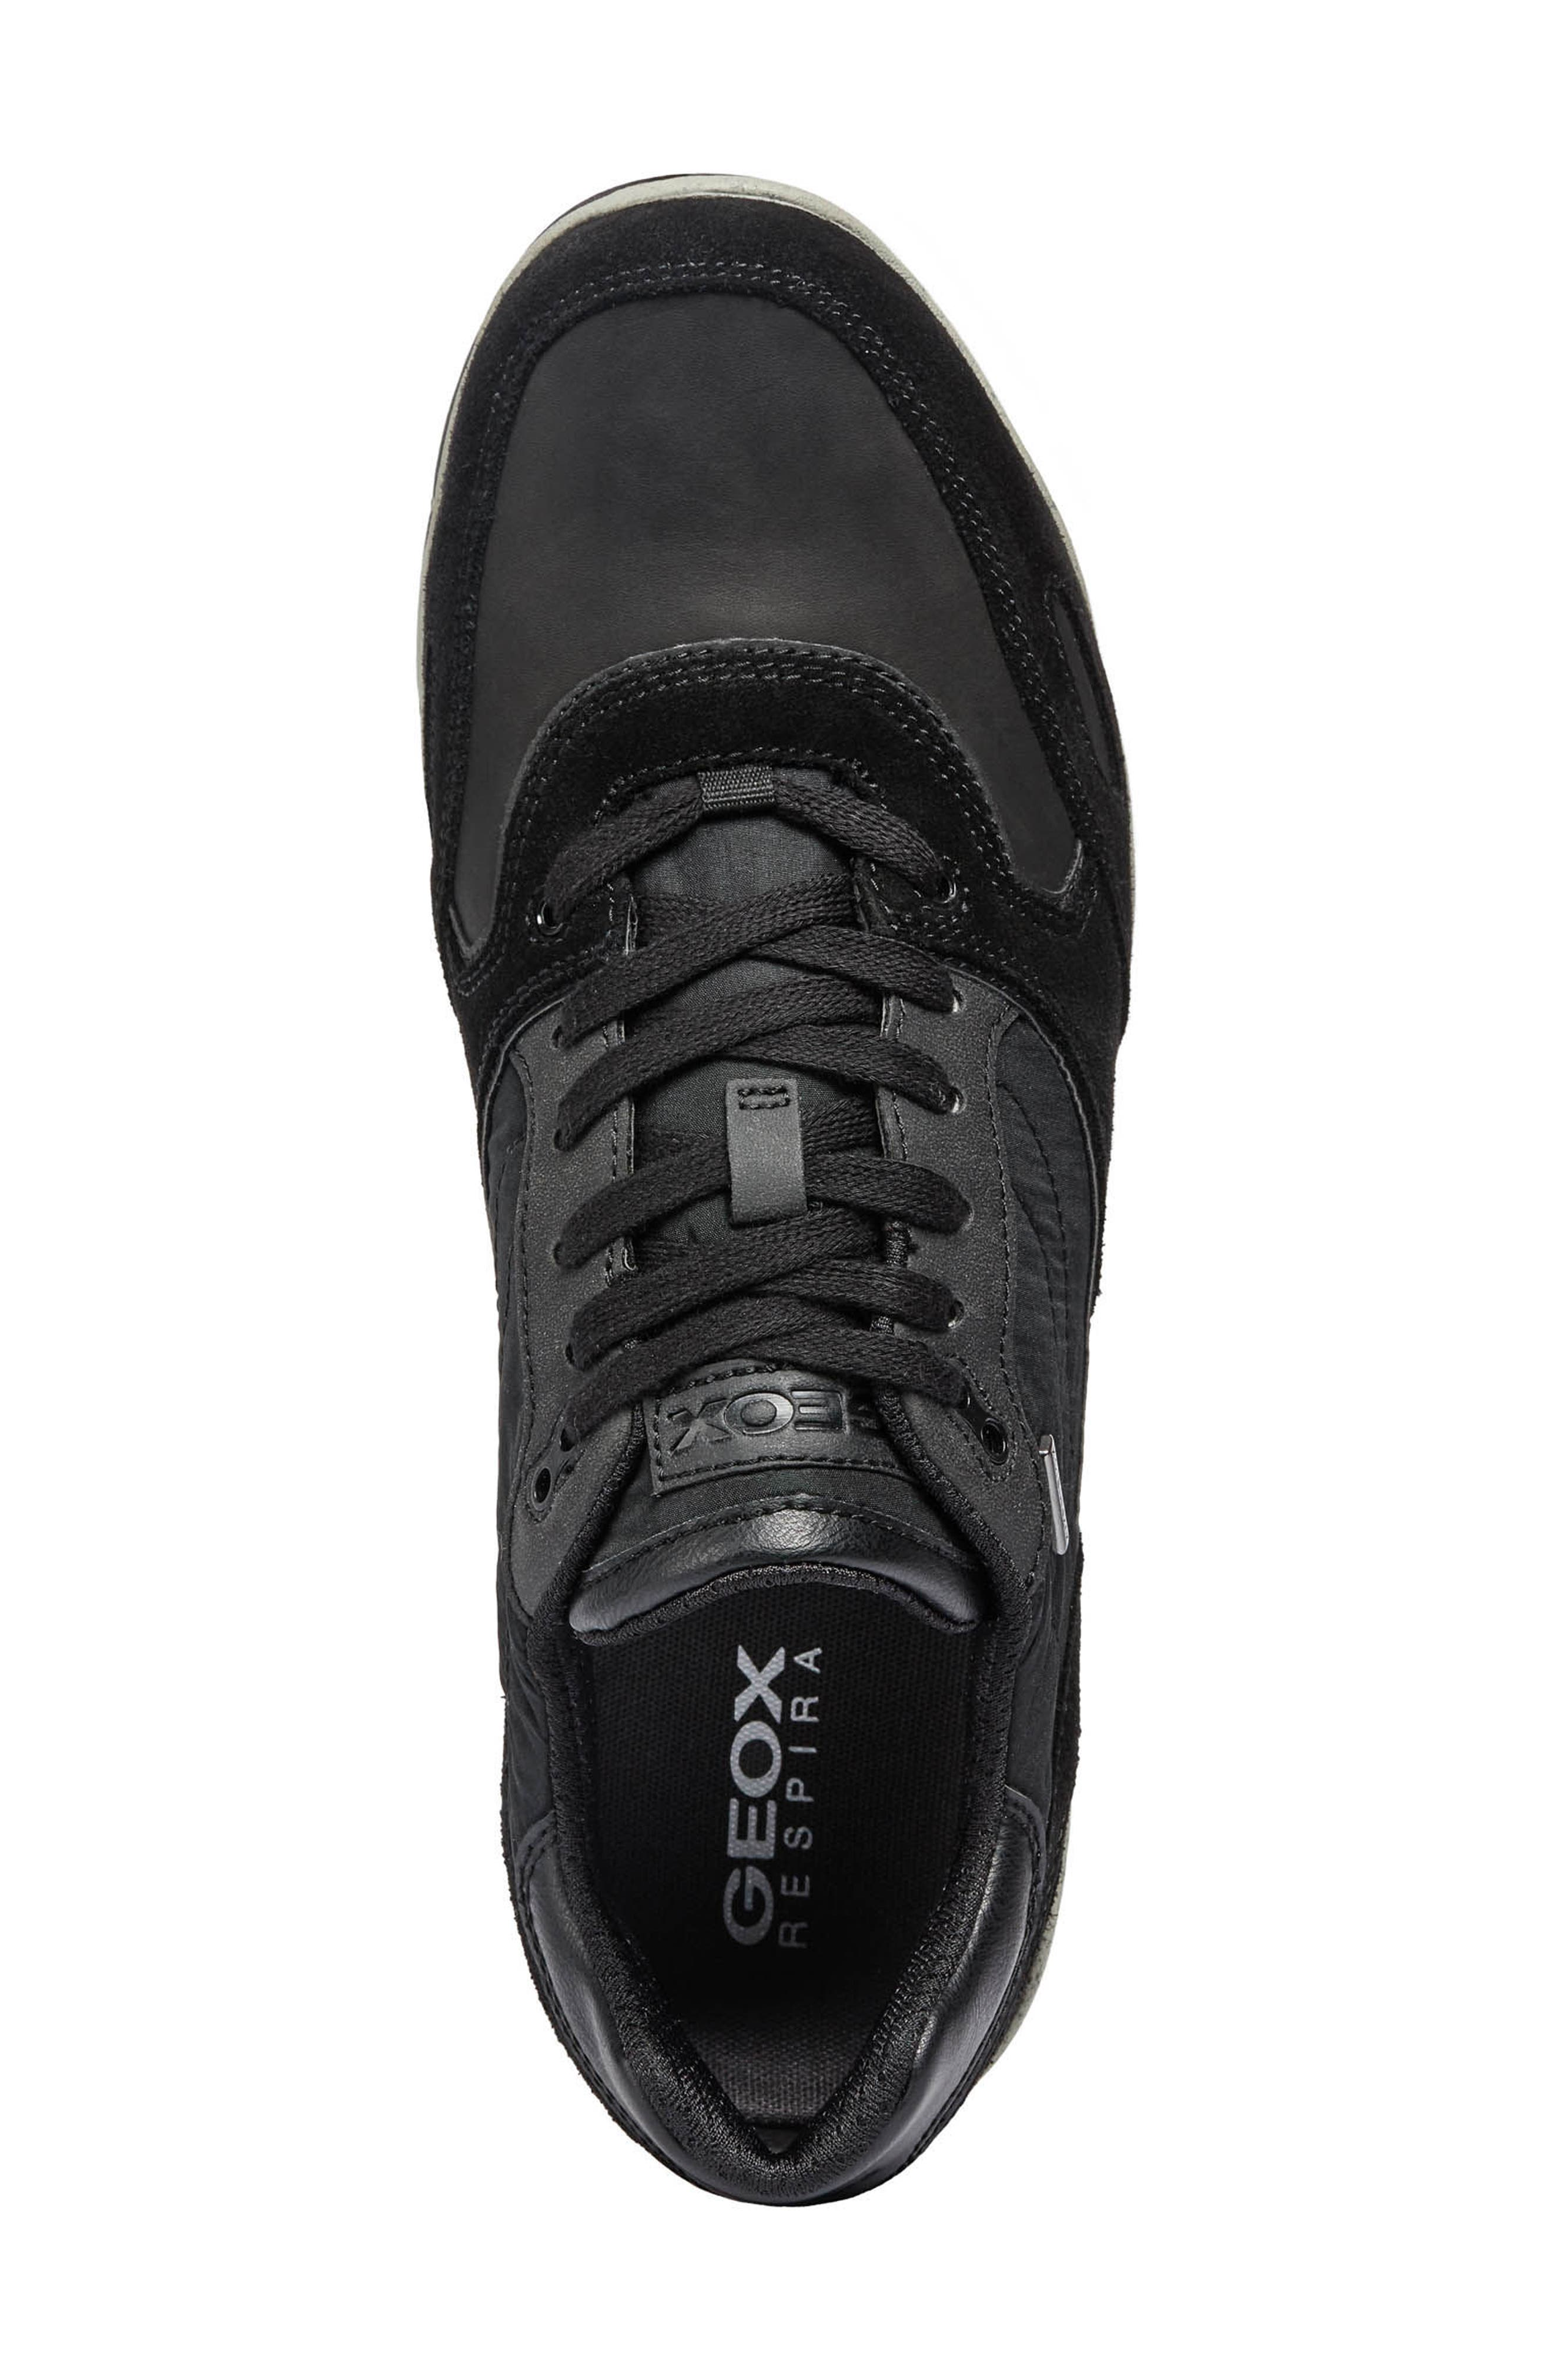 Sandro ABX Ambphibiox Waterproof Sneaker,                             Alternate thumbnail 5, color,                             BLACK/ BLACK LEATHER